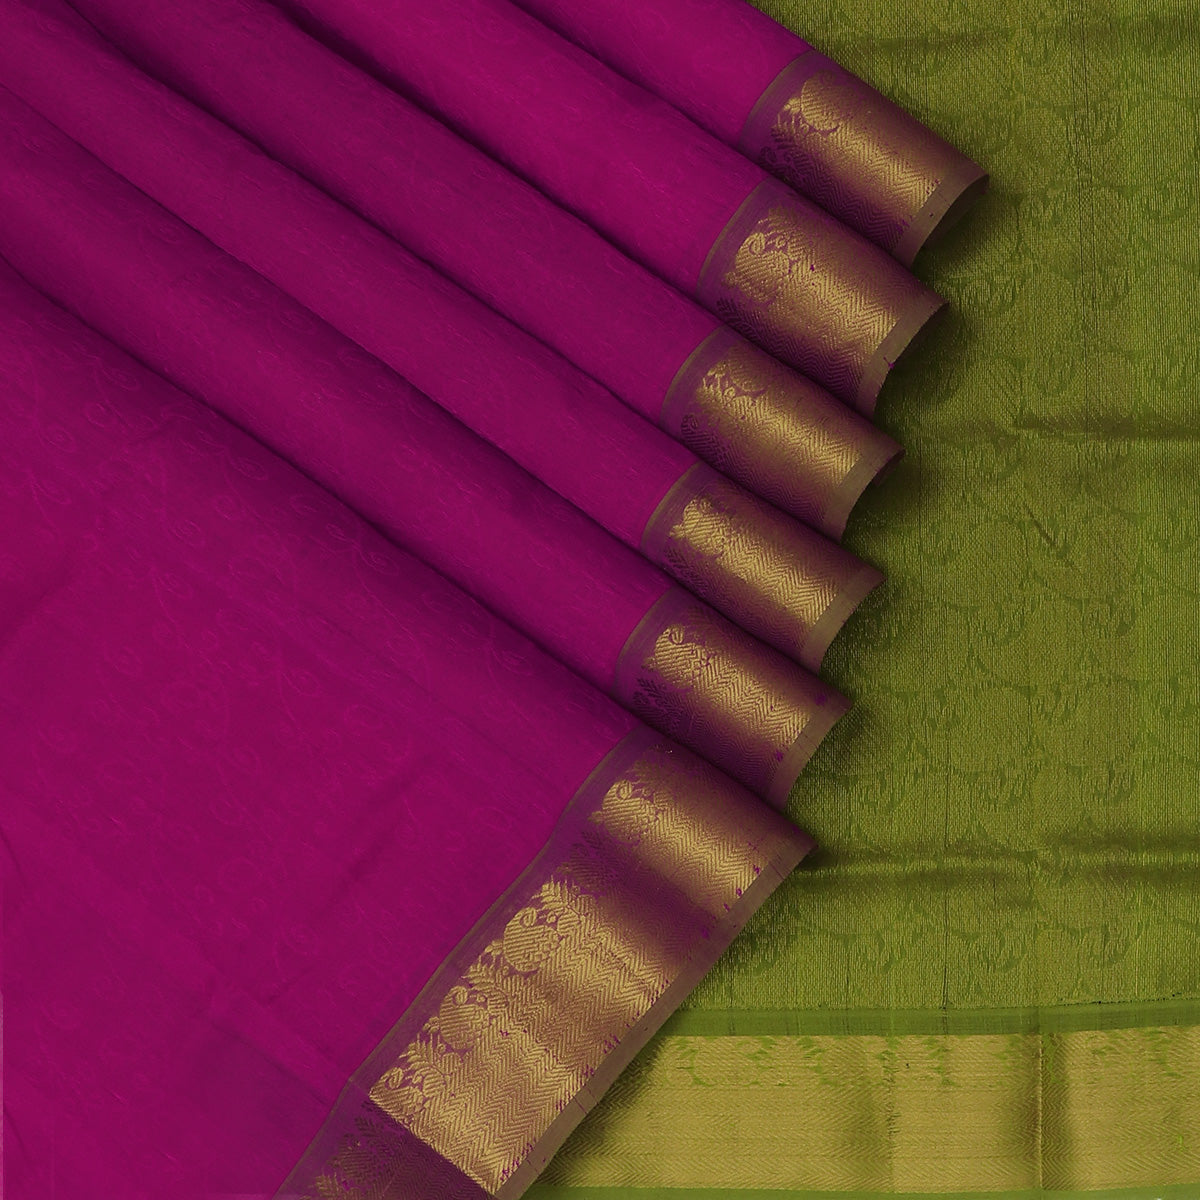 Silk Cotton Saree-Magenta and Light Green with Mango Zari border jacquard